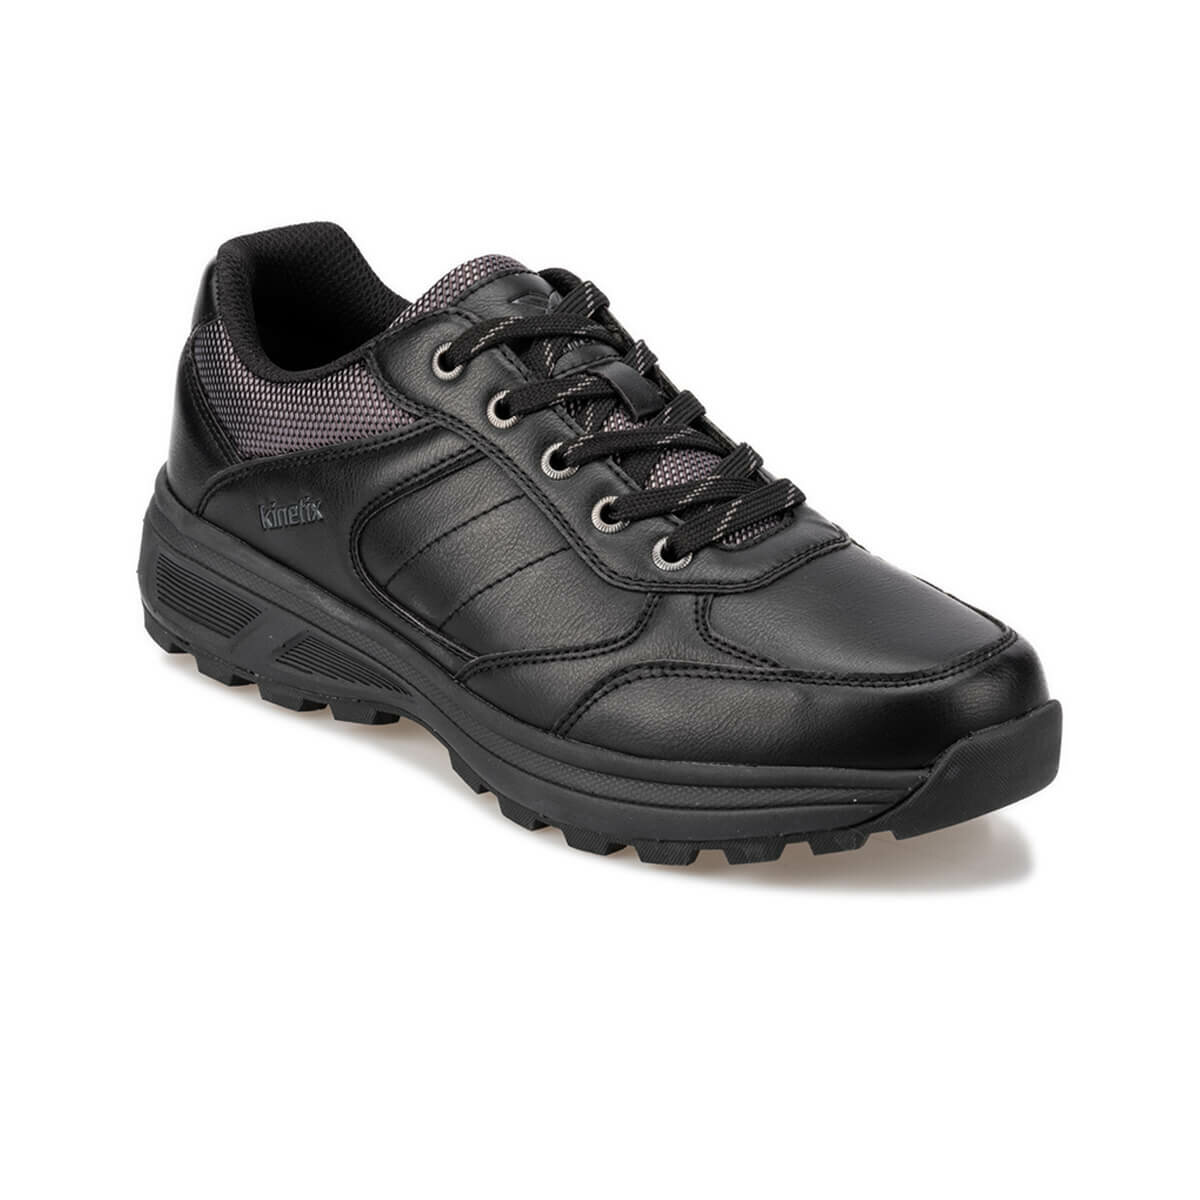 FLO SANEL 9PR Black Male Shoes KINETIX